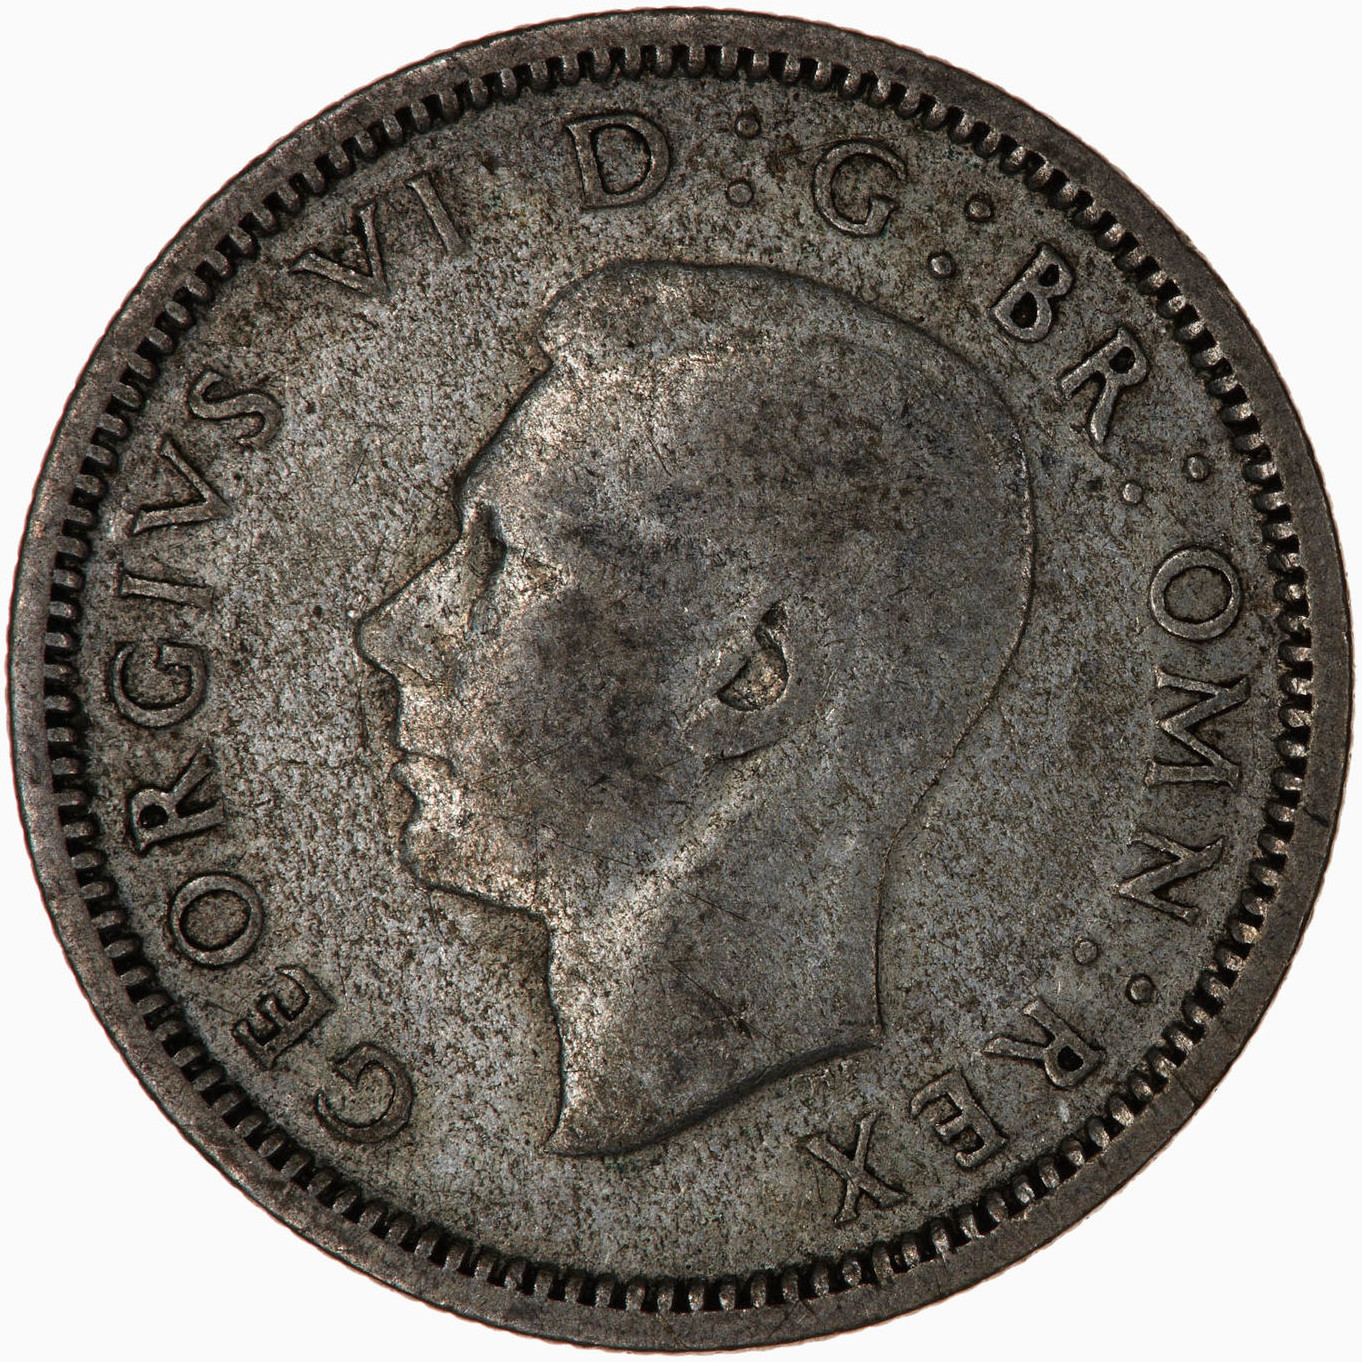 Sixpence 1937: Photo Coin - Sixpence, George VI, Great Britain, 1937